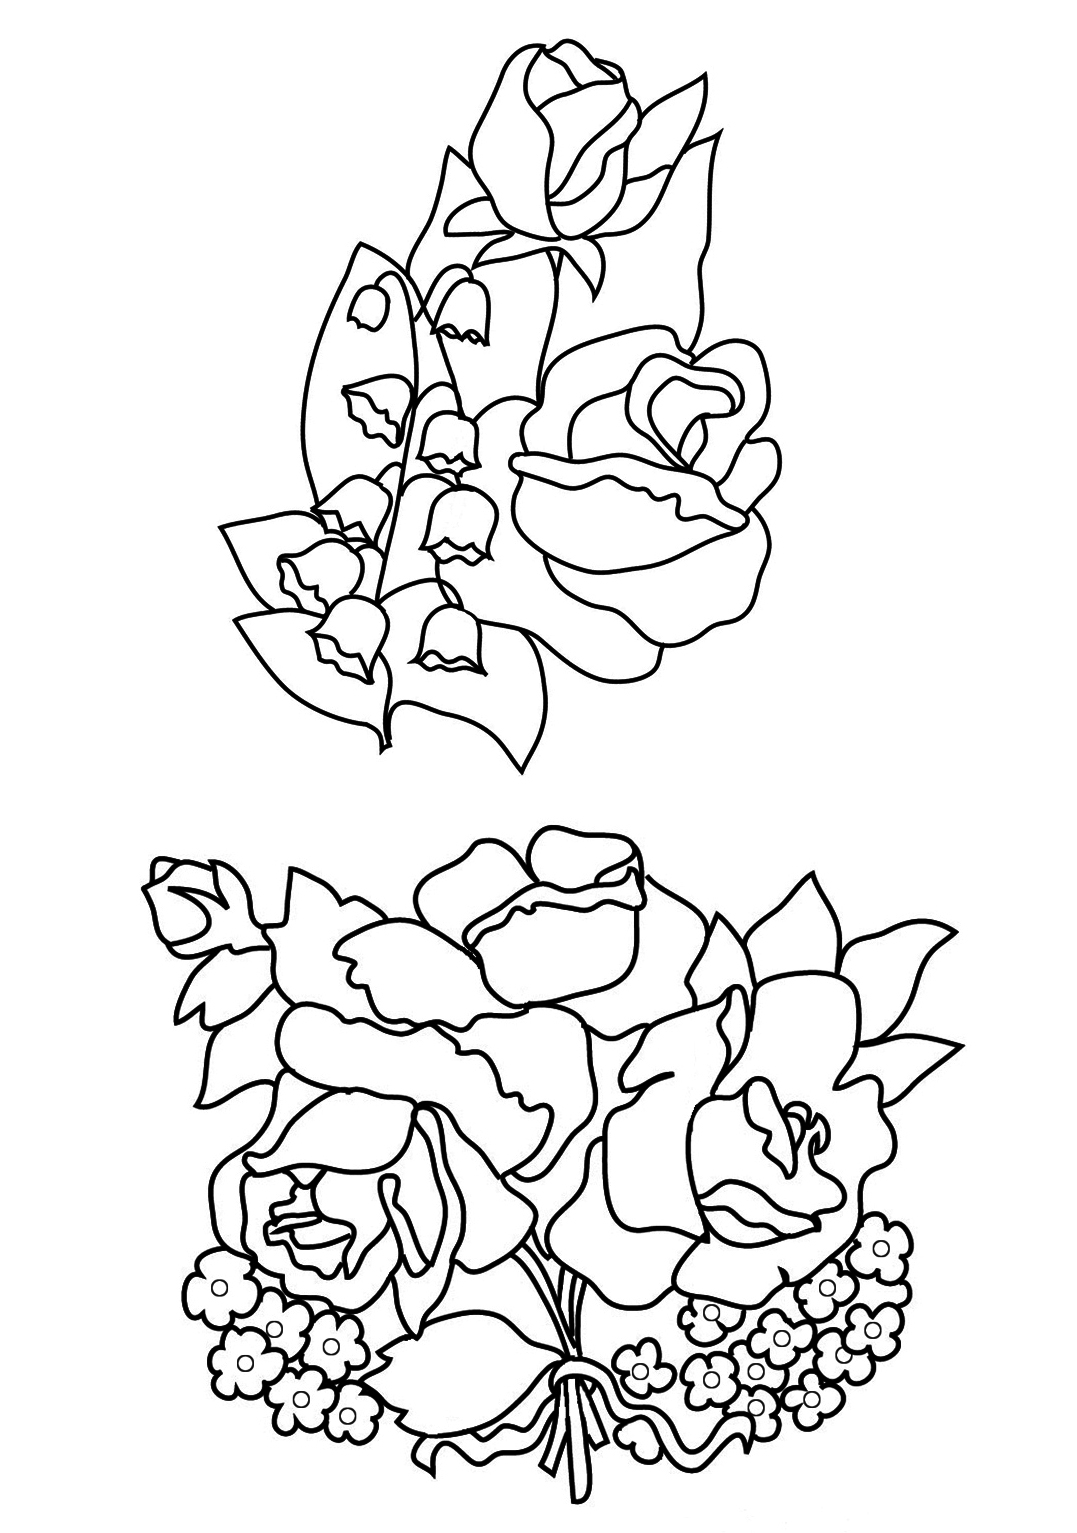 This is a graphic of Obsessed roses coloring book